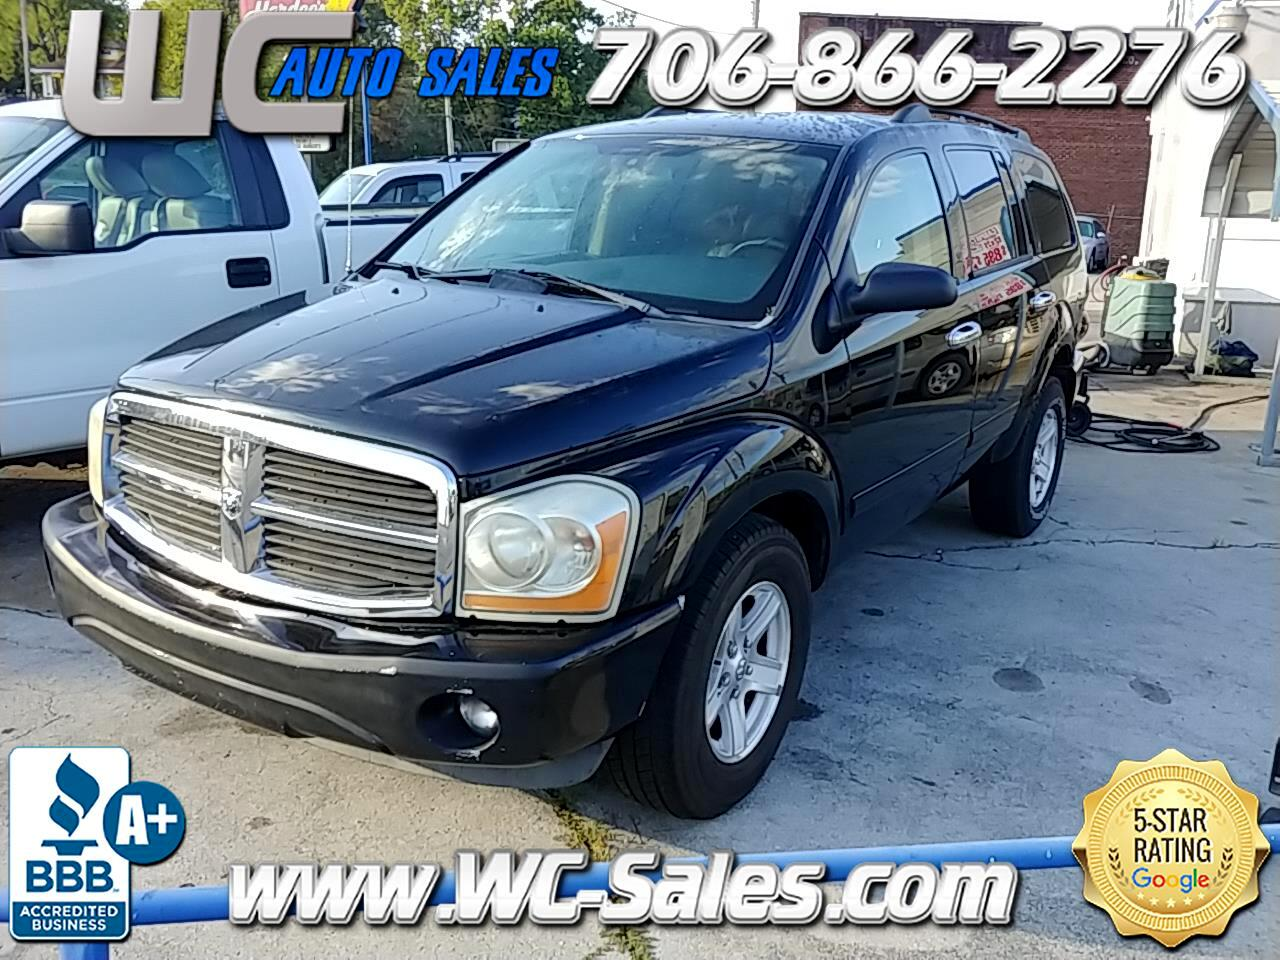 2005 Dodge Durango Adventurer Model 2WD